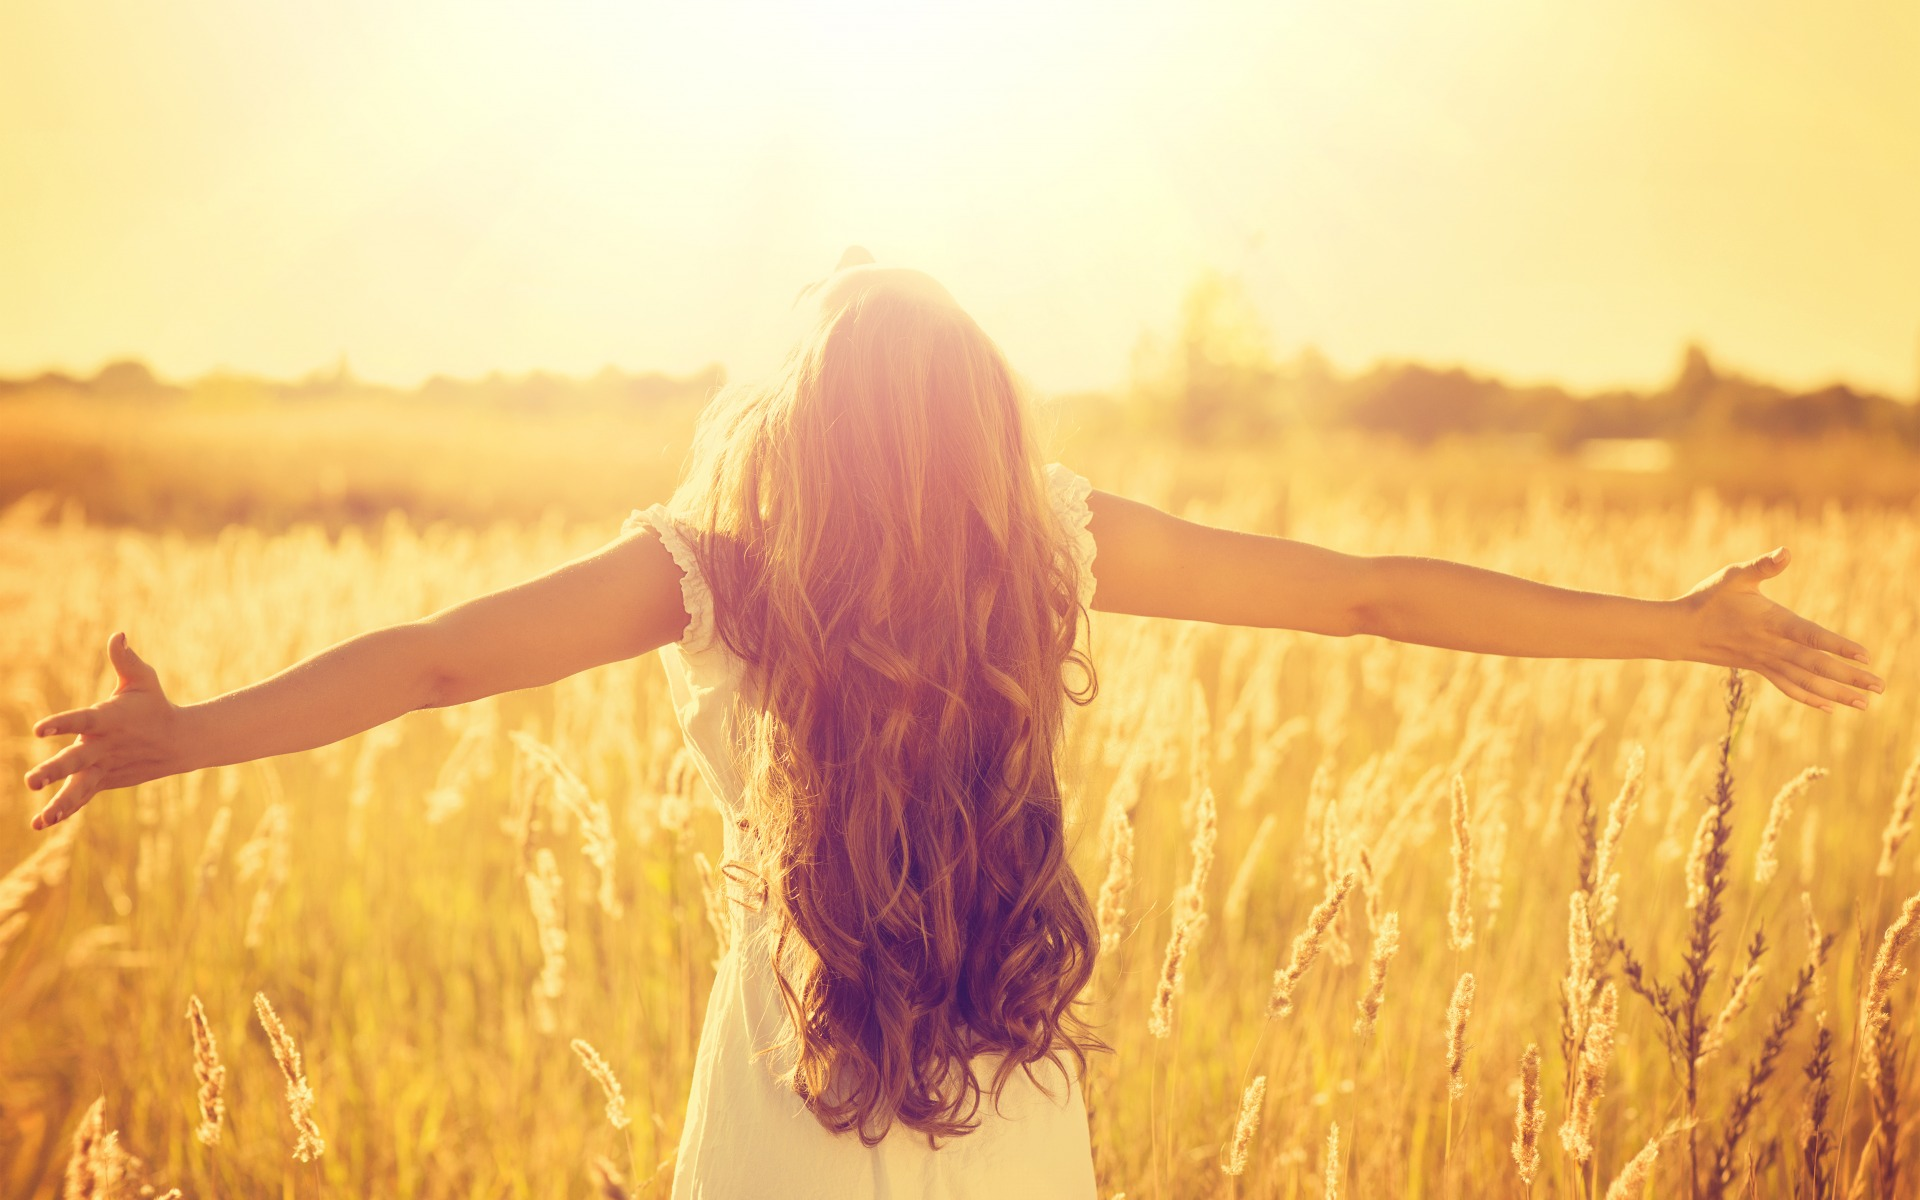 a-beautiful-girl-with-very-curl-long-hair-standing-on-the-wheat-field-in-sunshine-her-outstretched-arms-enjoys-the-freedom.jpg